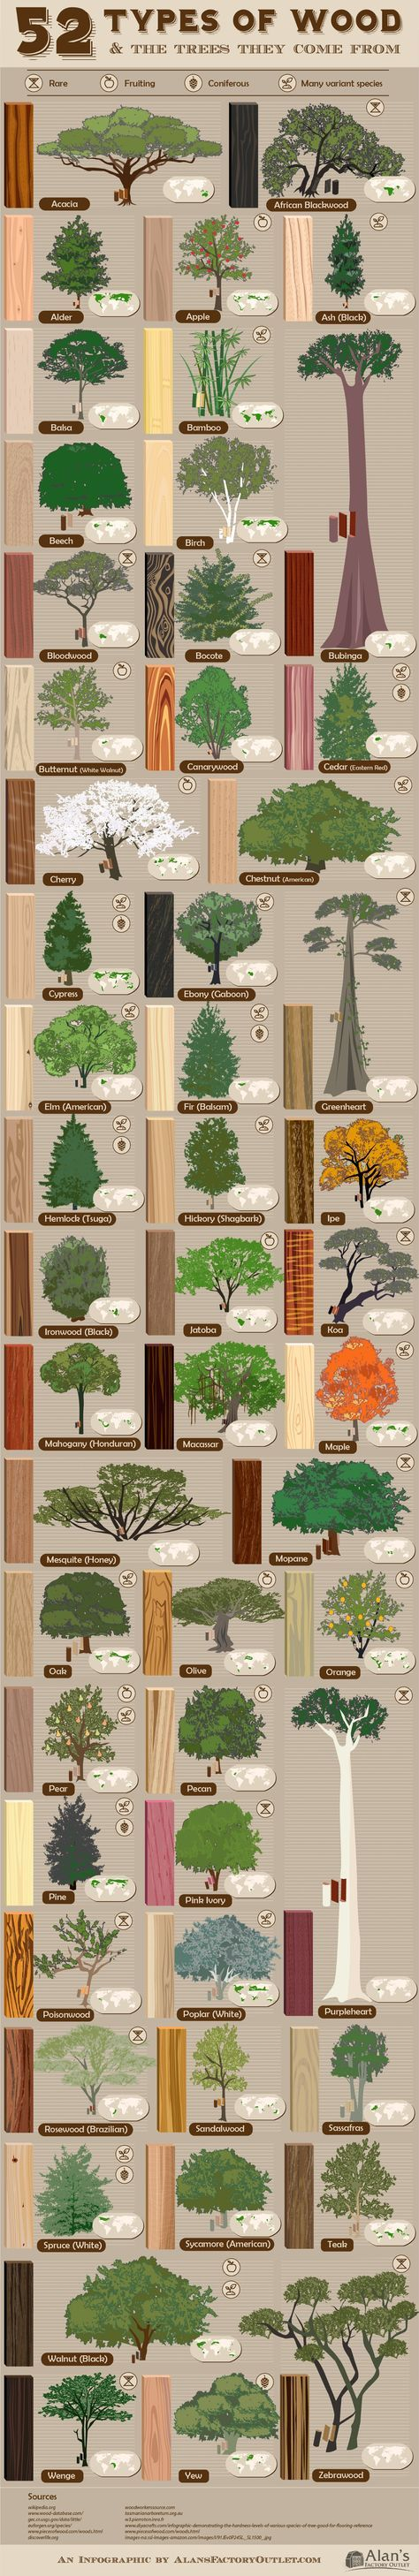 52 types of wood and the trees they come from